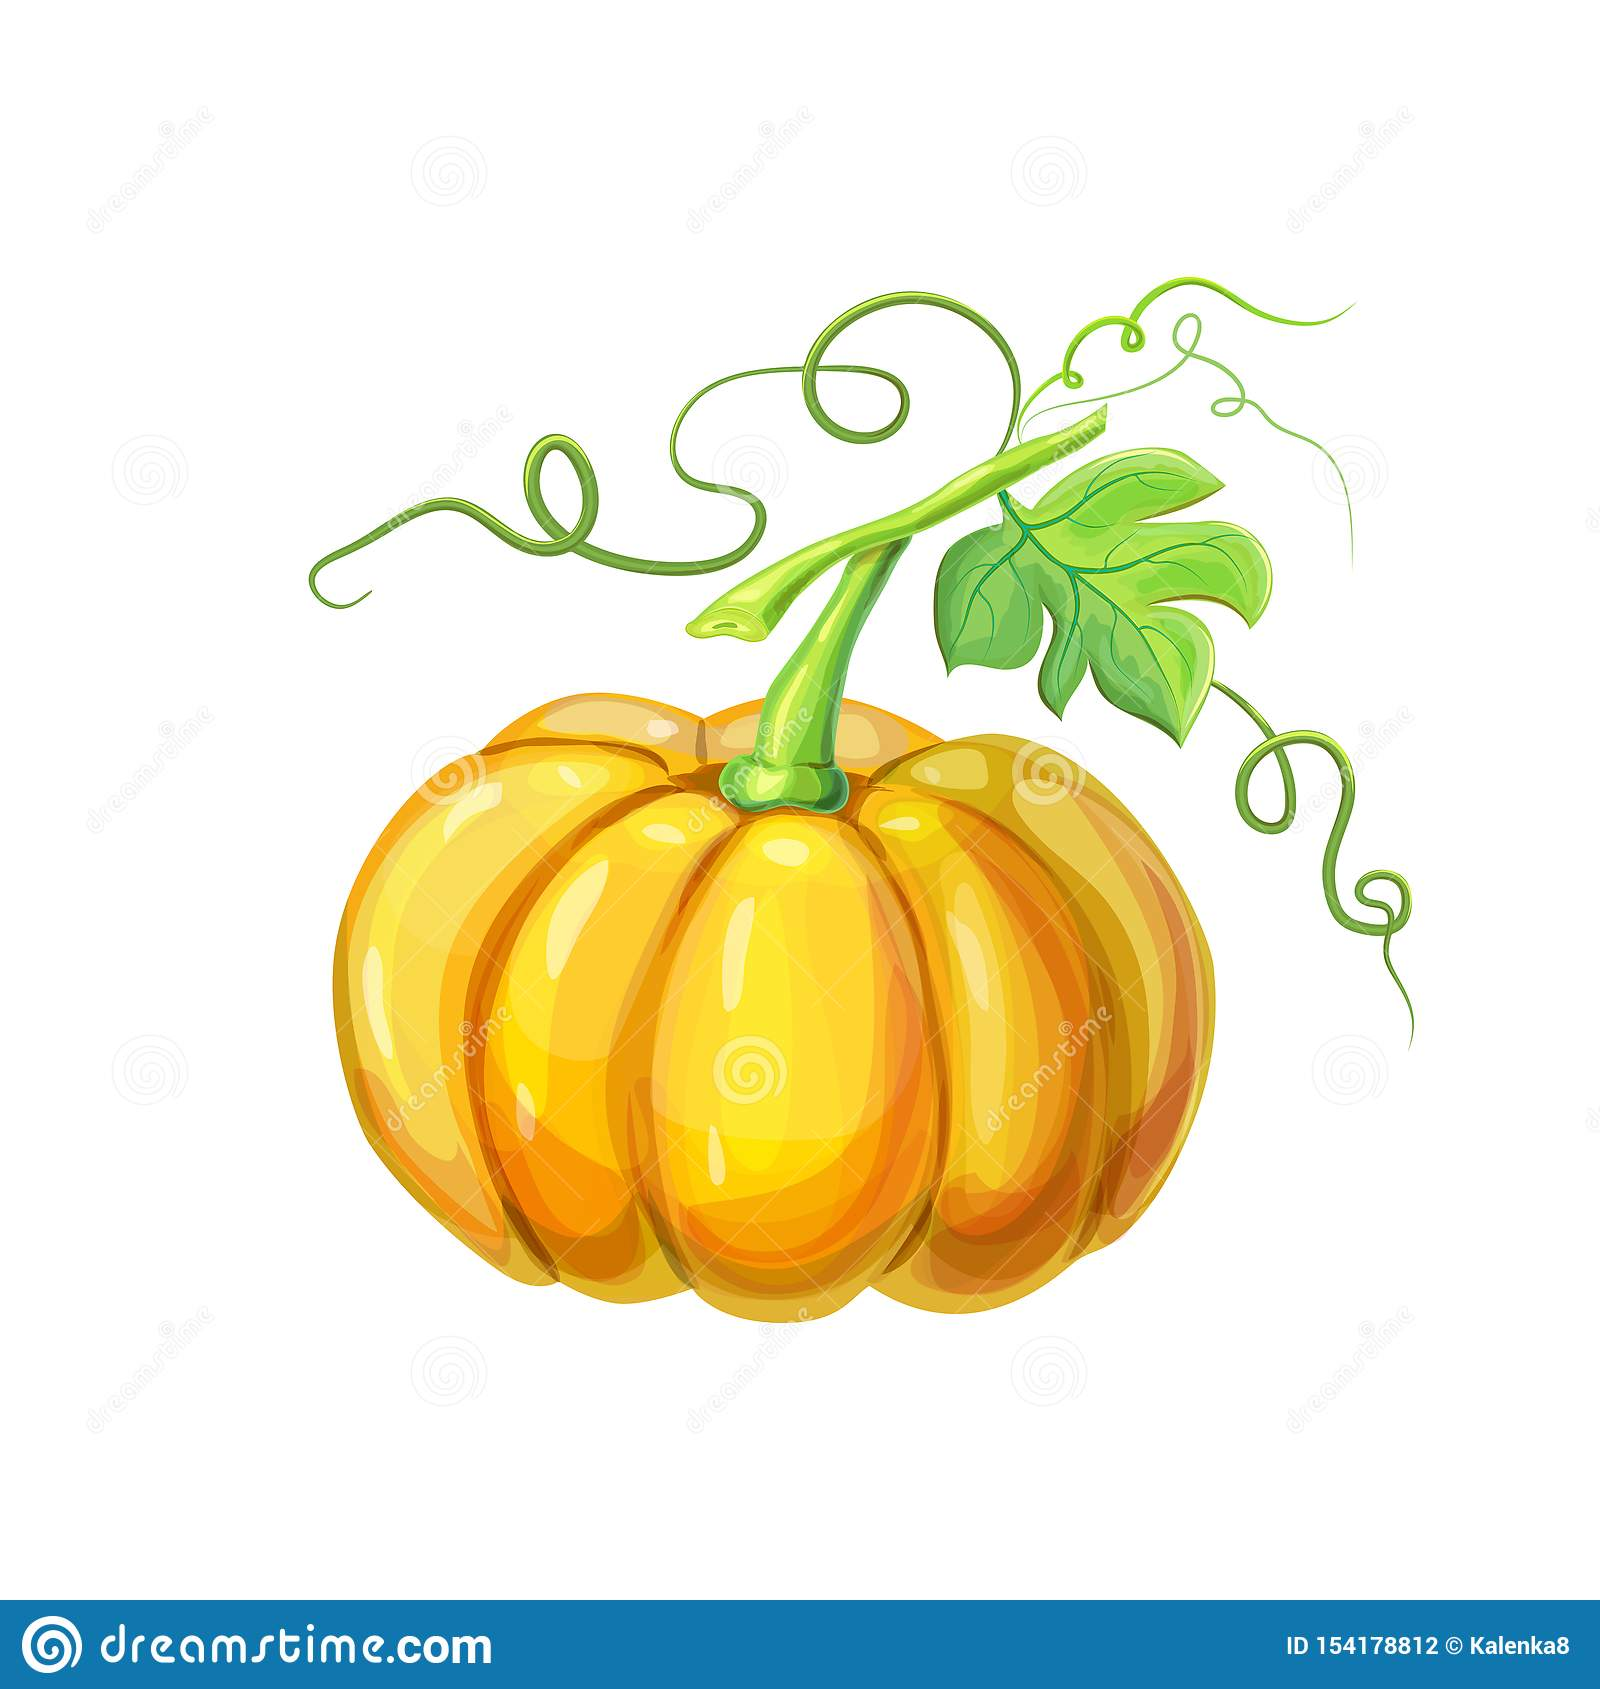 Realistic Orange Big Ripe Pumpkin With Stem Green Leaves And Curly Tendrils Isolated On White Beautiful Hand Drawn Stock Vector Illustration Of Natural Agriculture 154178812